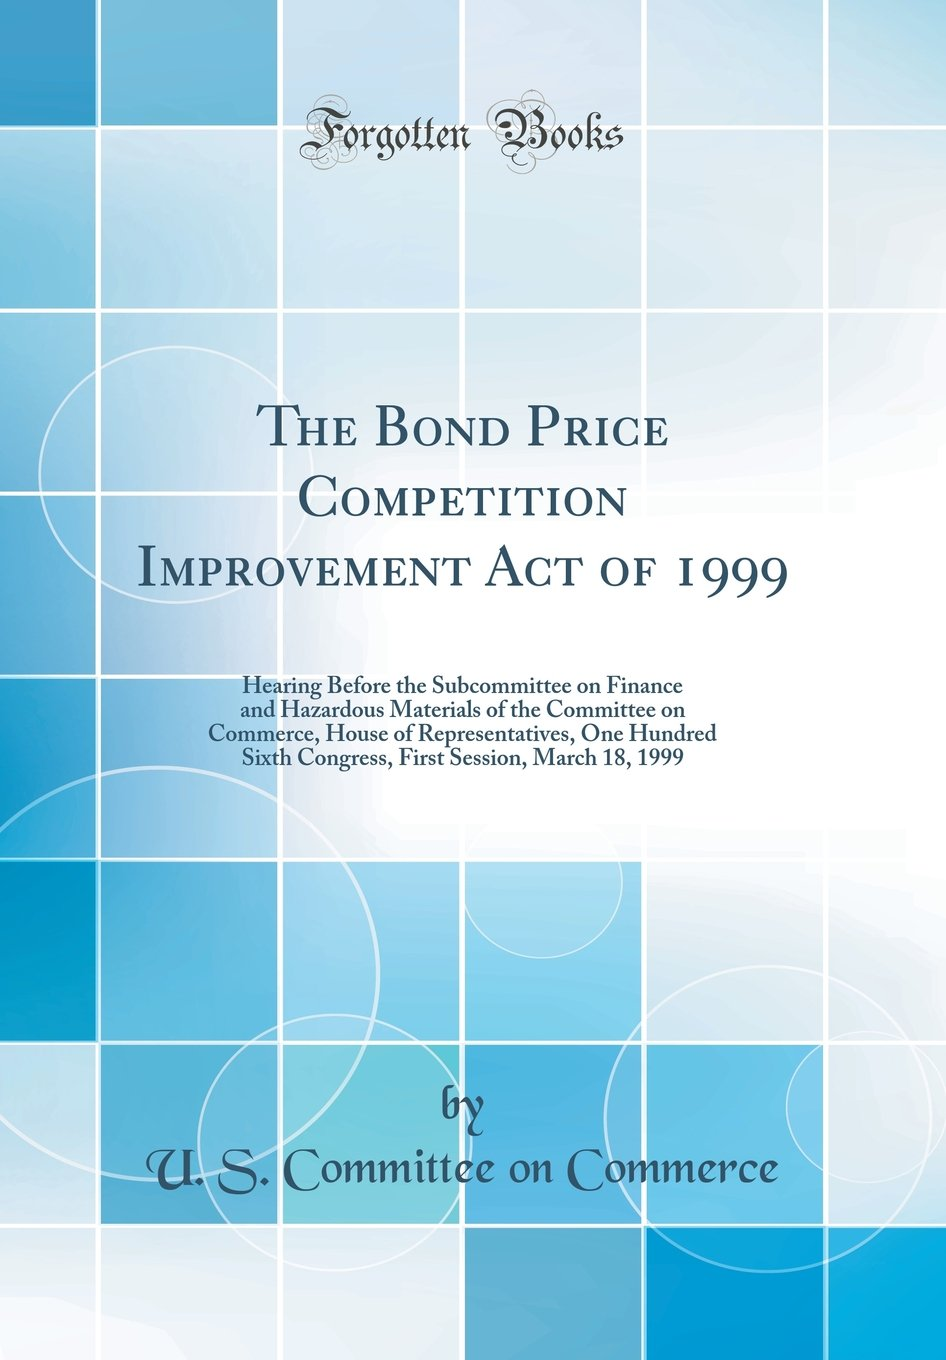 The Bond Price Competition Improvement Act of 1999: Hearing Before the Subcommittee on Finance and Hazardous Materials of the Committee on Commerce, ... Session, March 18, 1999 (Classic Reprint) ebook